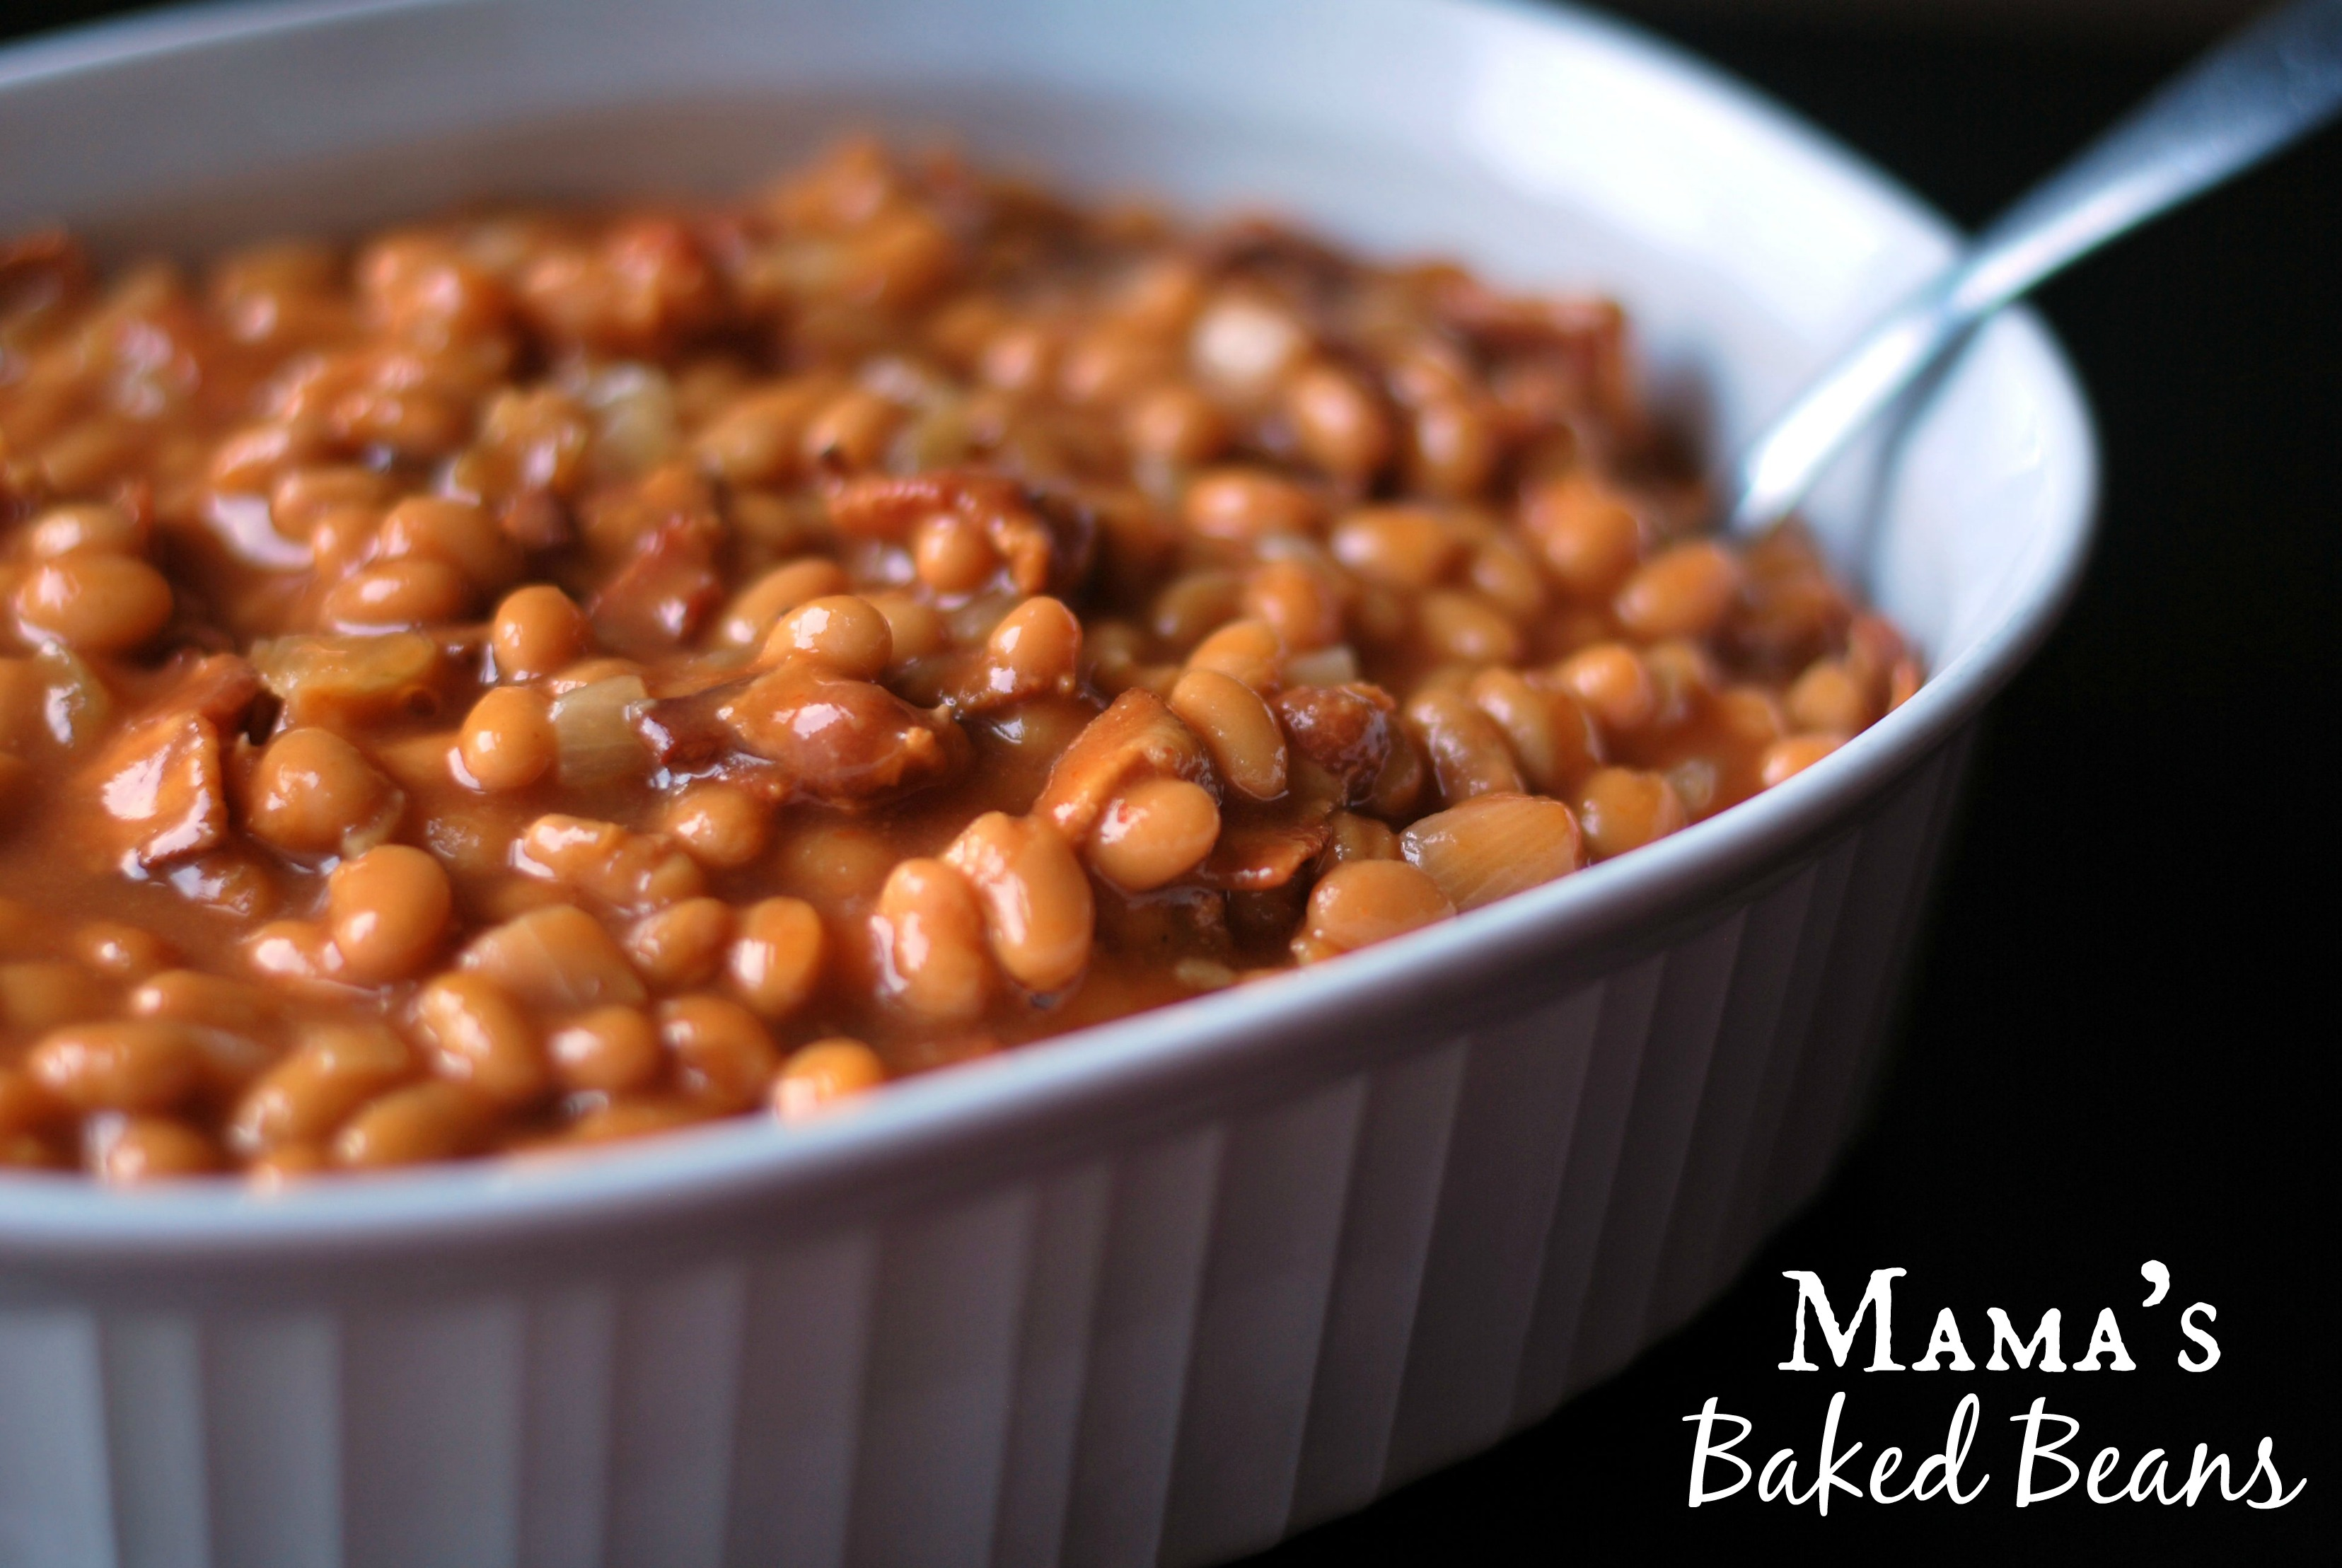 Mama's Baked Beans